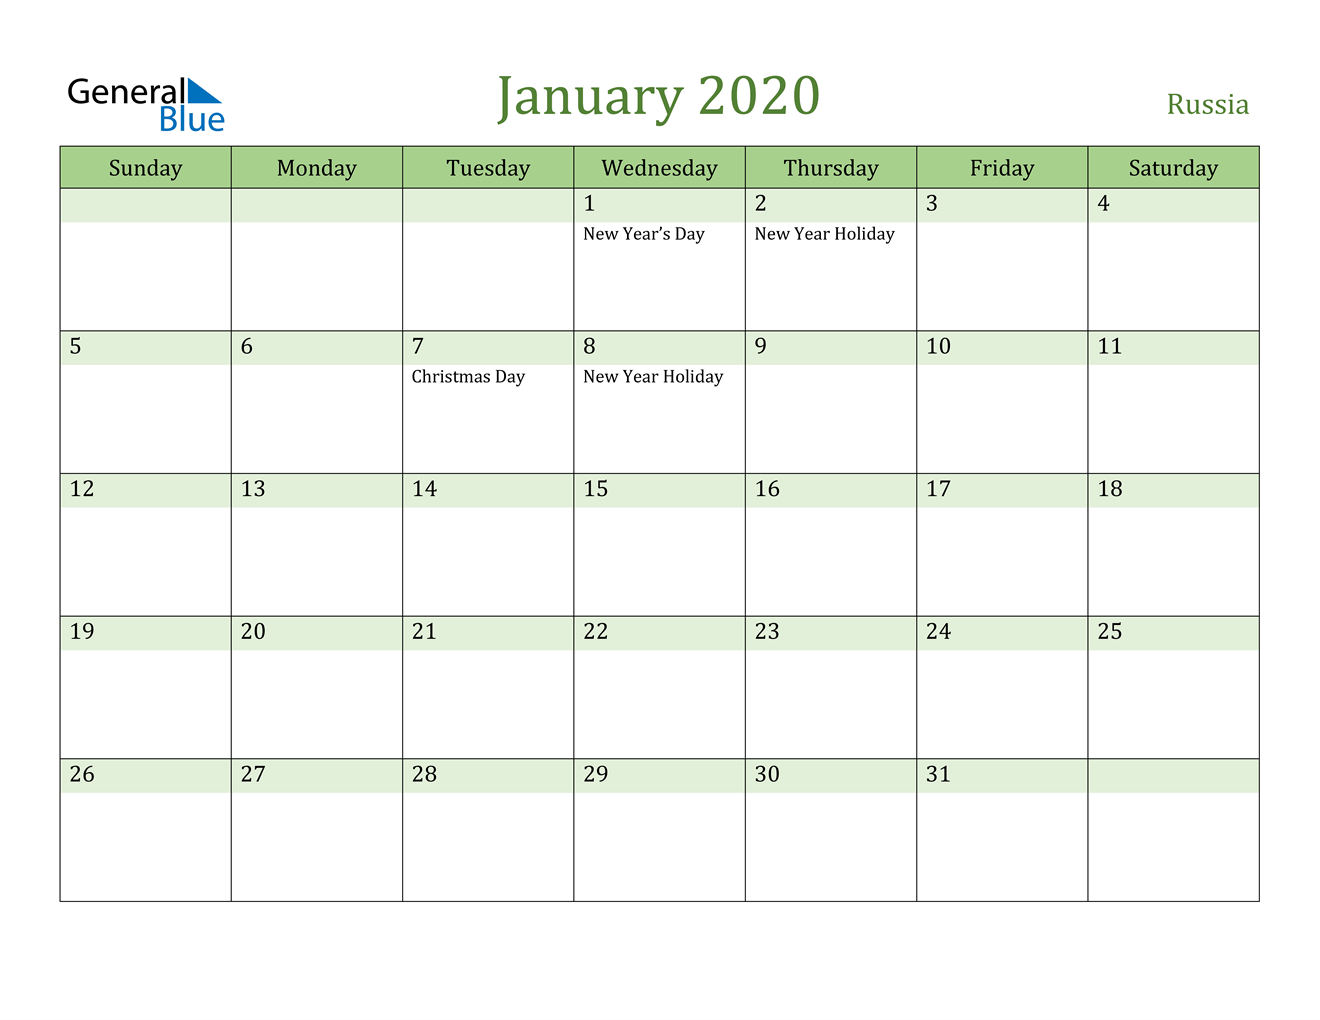 Image of January 2020 Cool and Relaxing Green Calendar Calendar